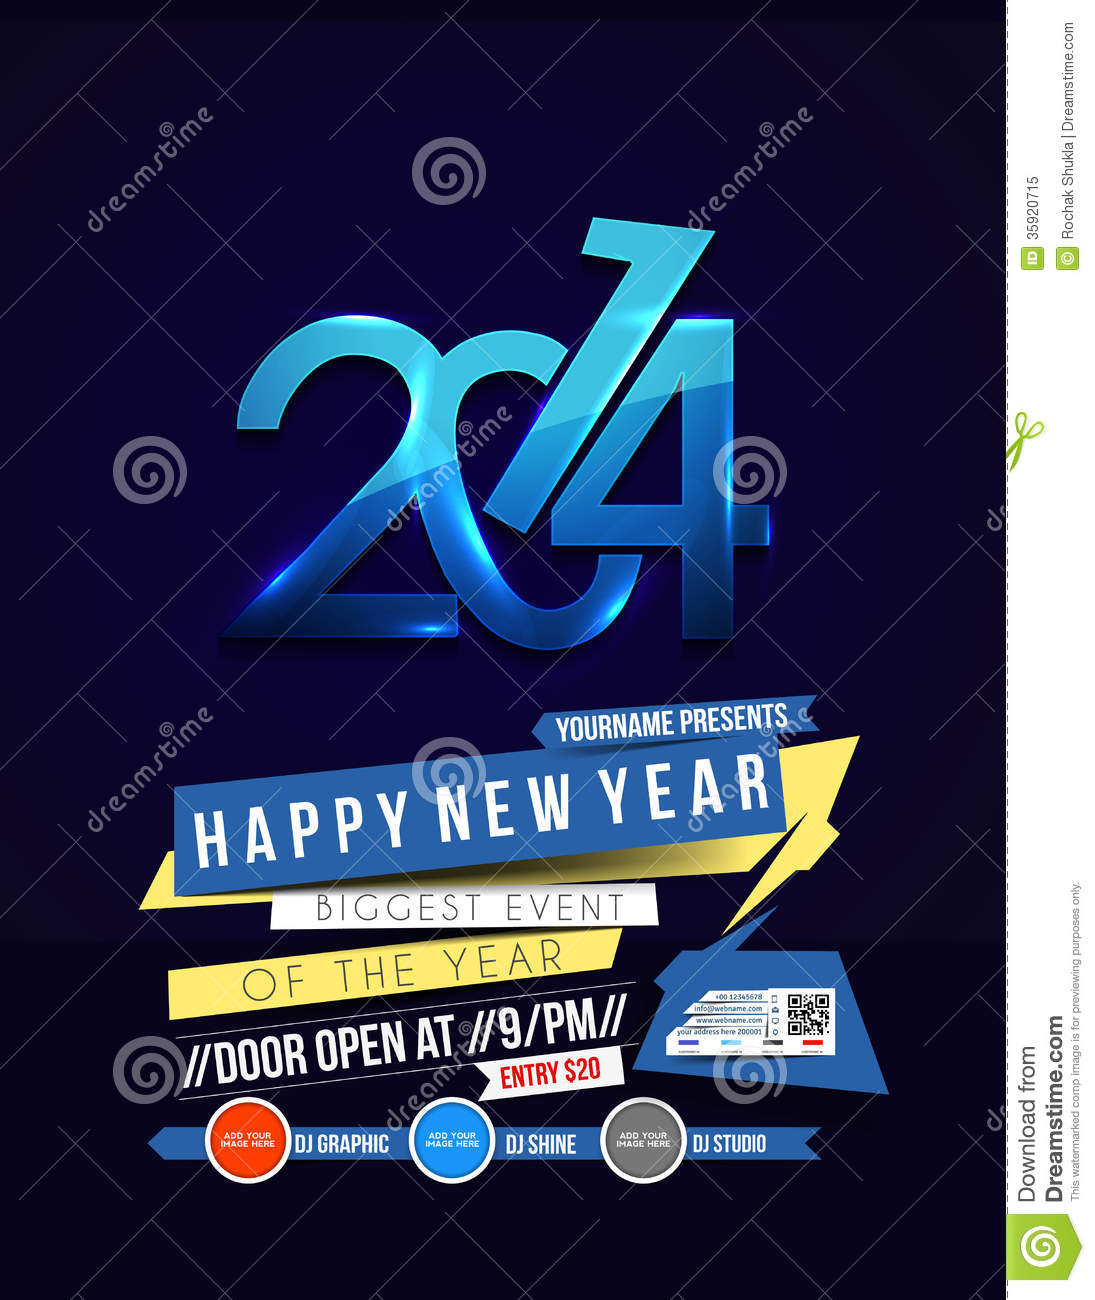 New Year Party Flyer Royalty Free Photo Image 35920715 – New Year Poster Template